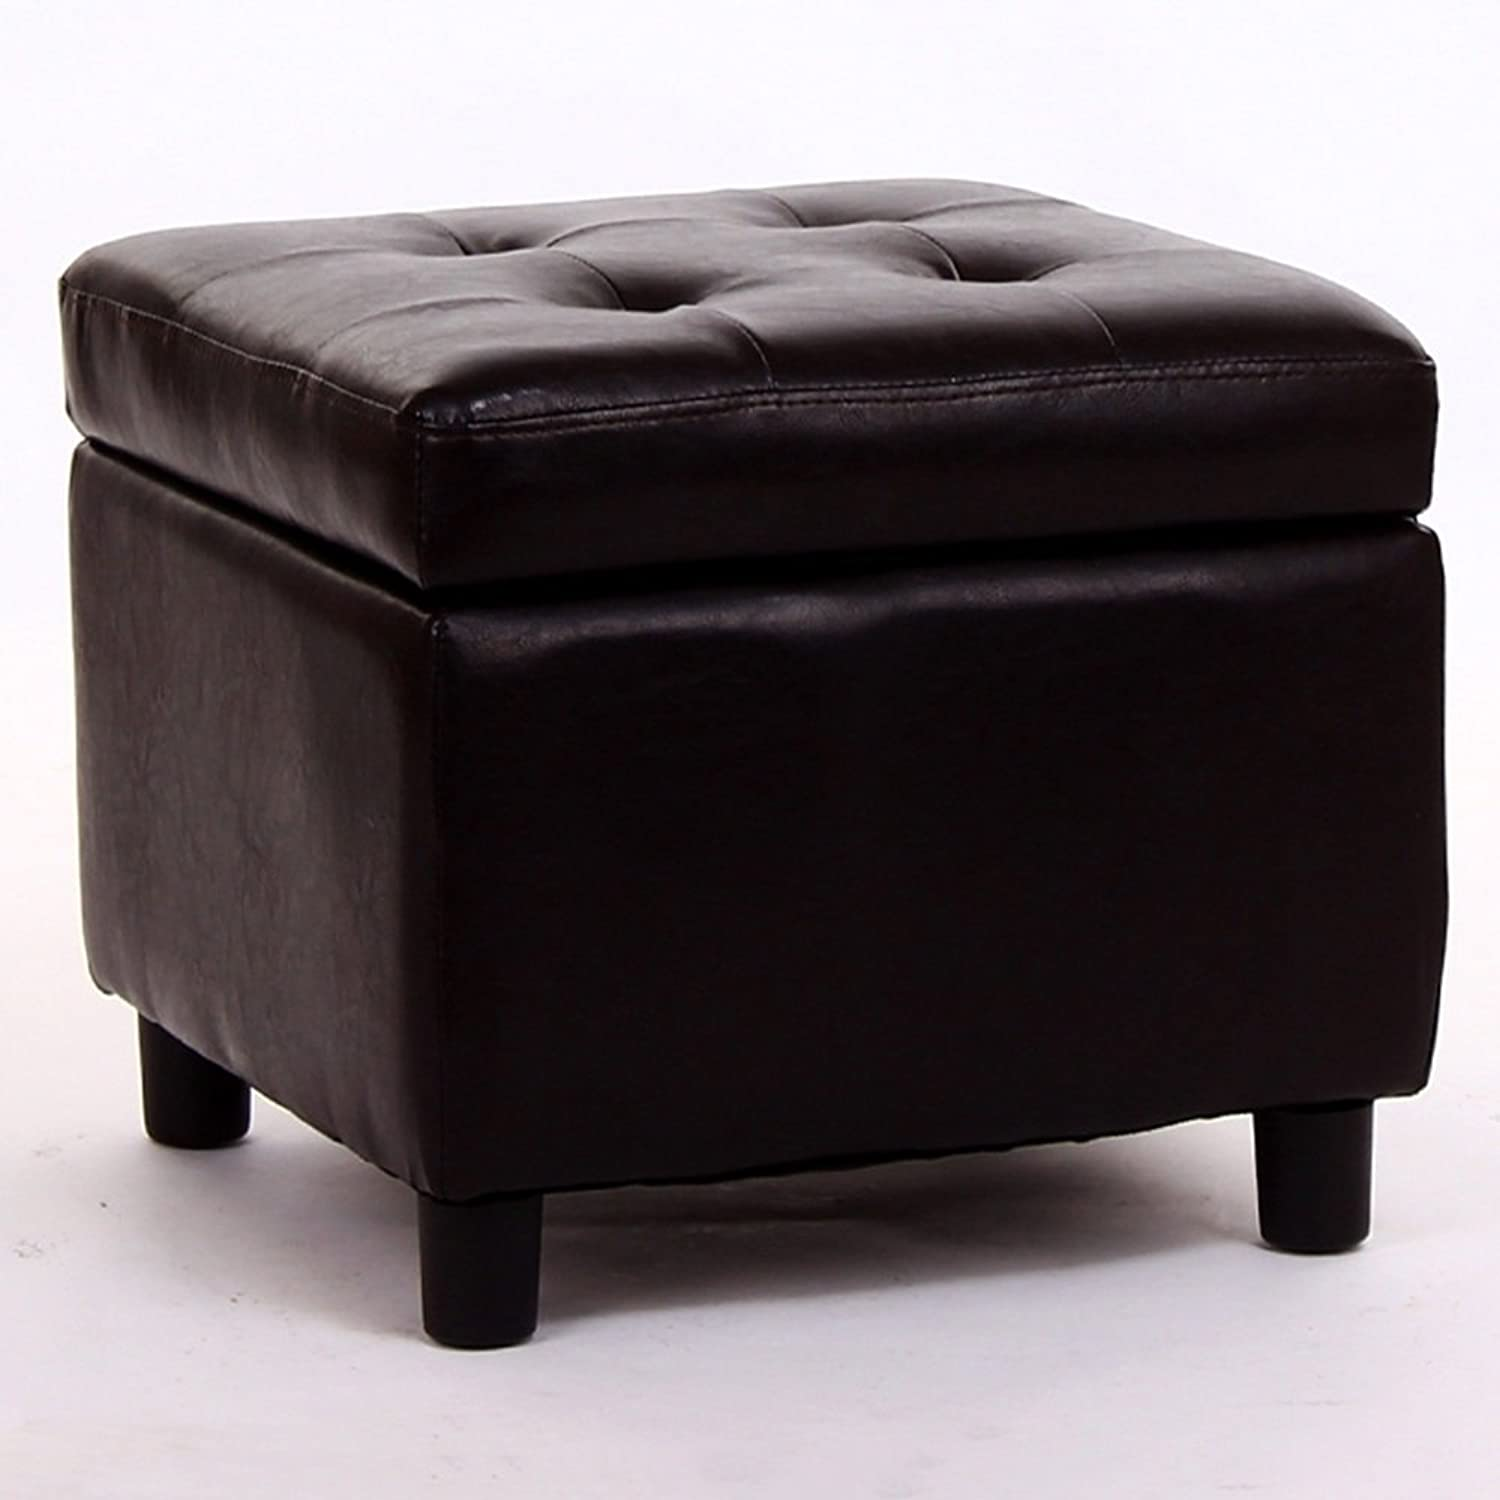 RUNWEI Stool Storage Sofa Bench Multi-Purpose shoes Bench (color   Brown)